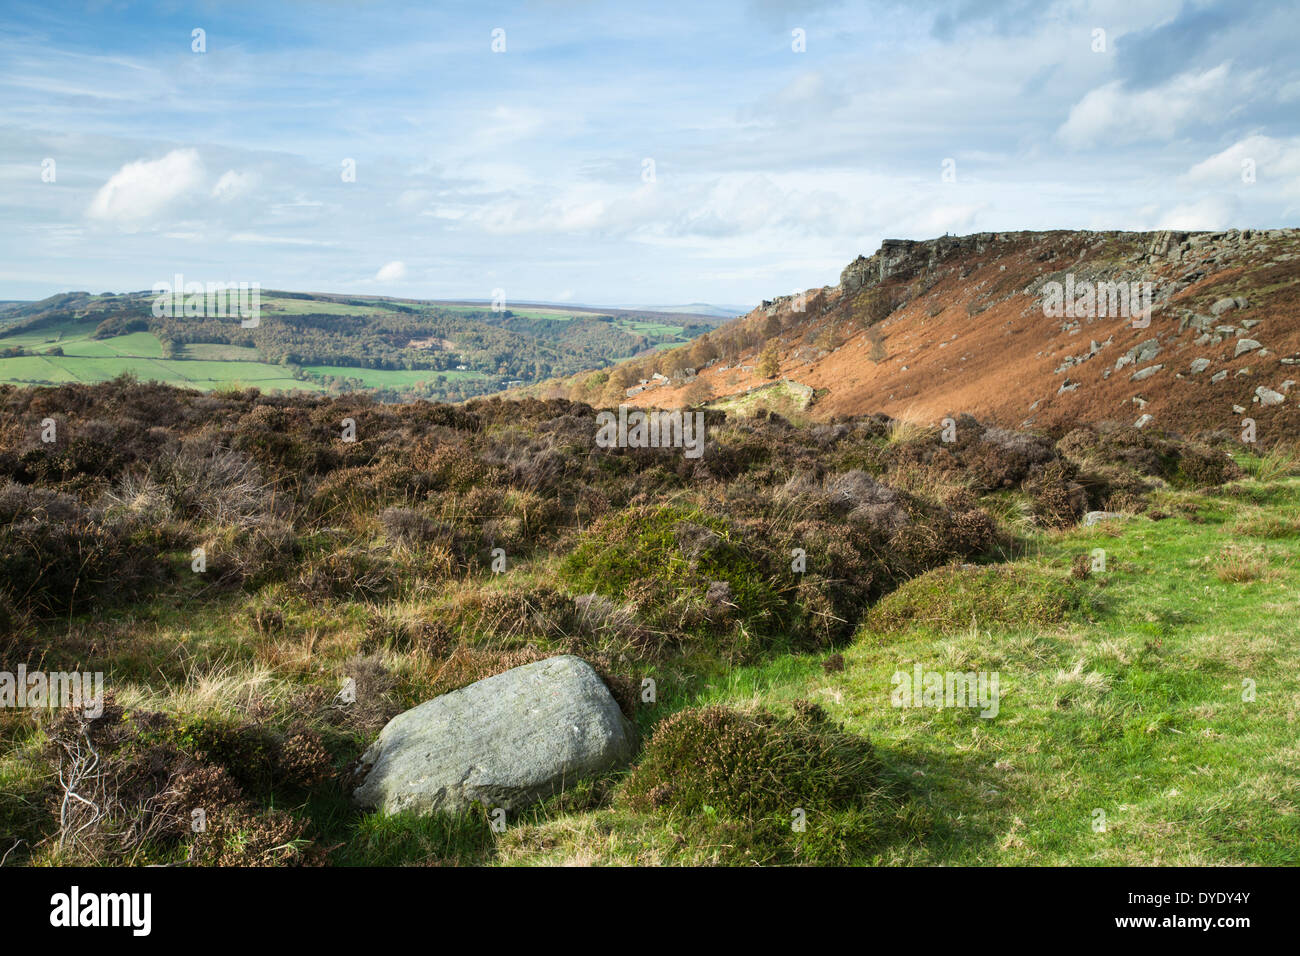 Clumps of faded heather and the view from Baslow Edge towards Curbar Edge and rolling wooded countryside beyond, Derbyshire, Peak District, England - Stock Image